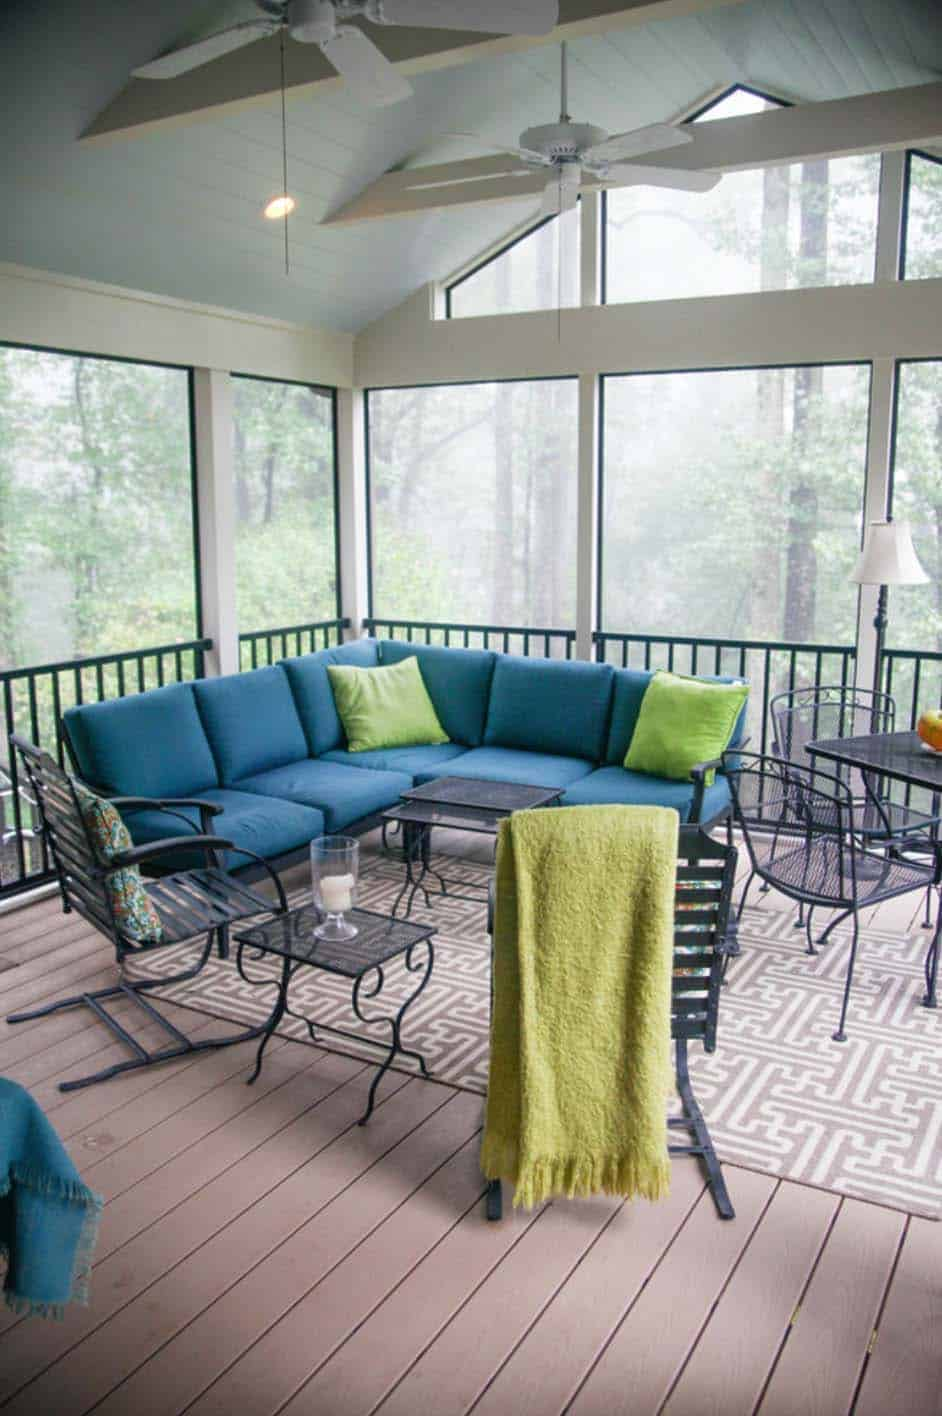 30 Delightful And Intimate Three-Season Screened Porch Ideas